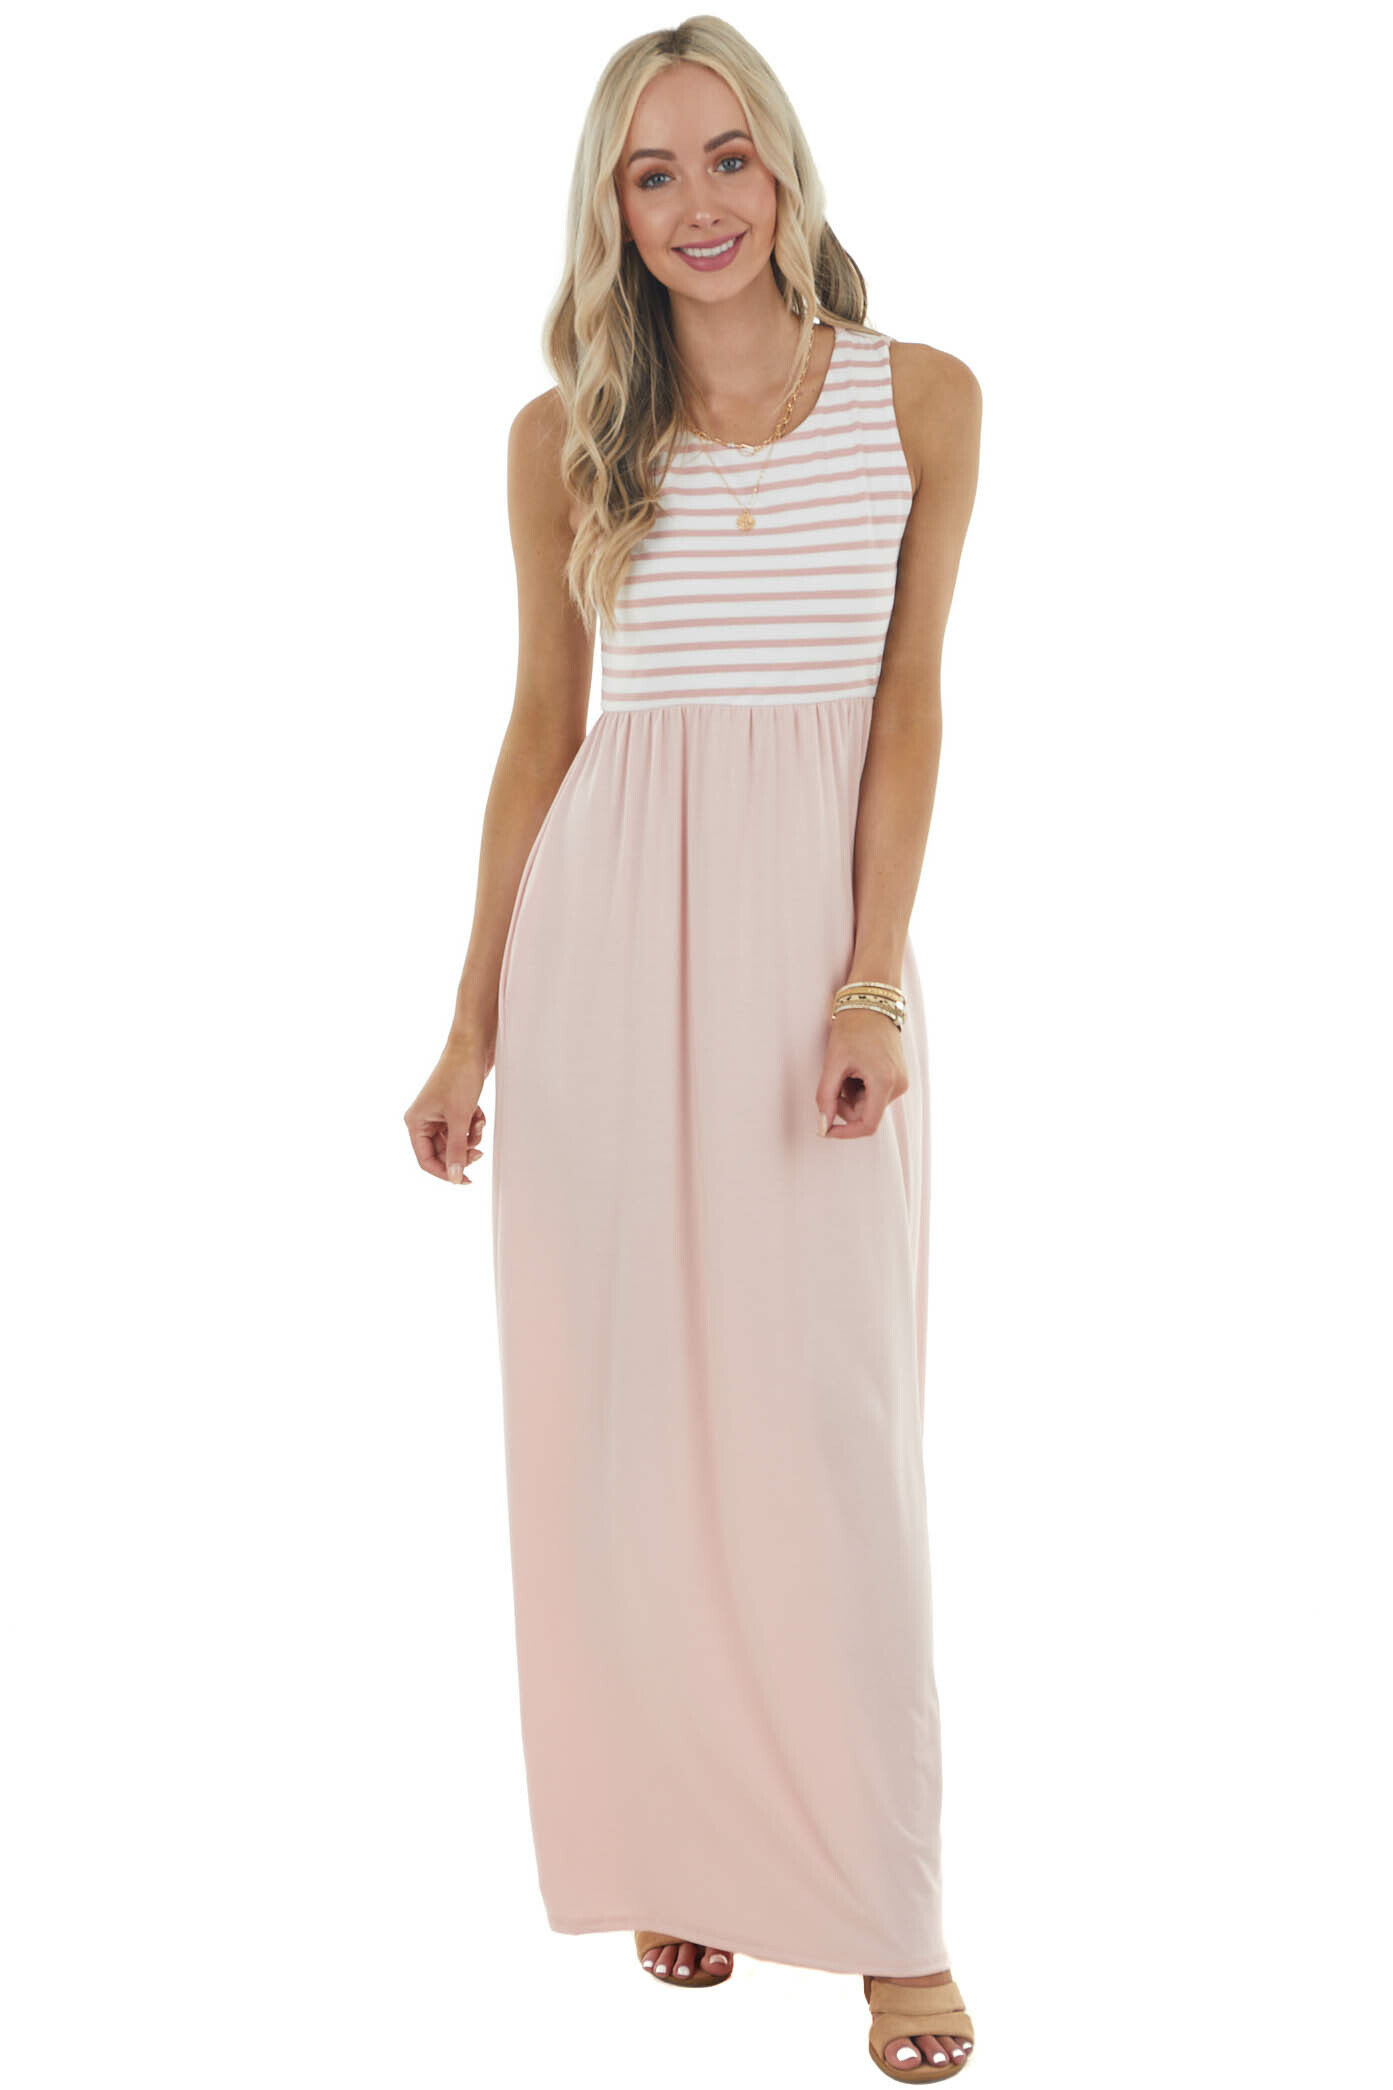 Dusty Blush Sleeveless Knit Maxi Dress with Striped Bodice